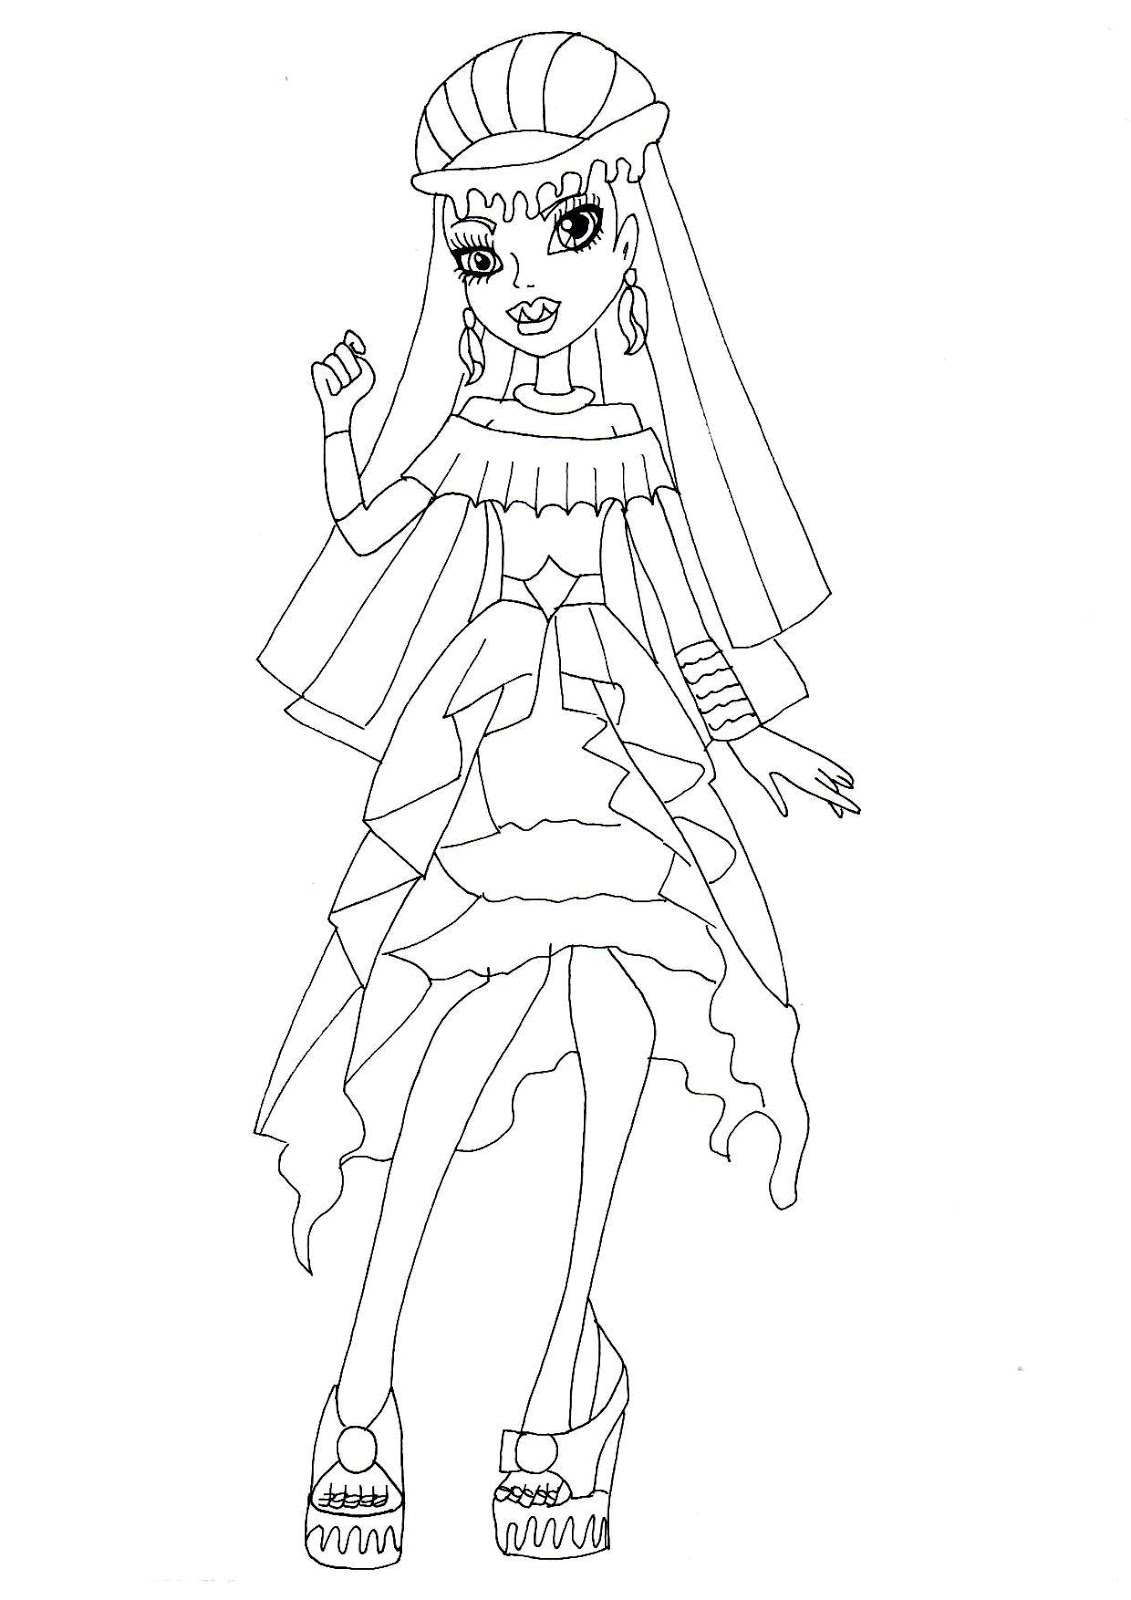 Free Printable Monster High Coloring Pages: Abbey Bominable 13 ...